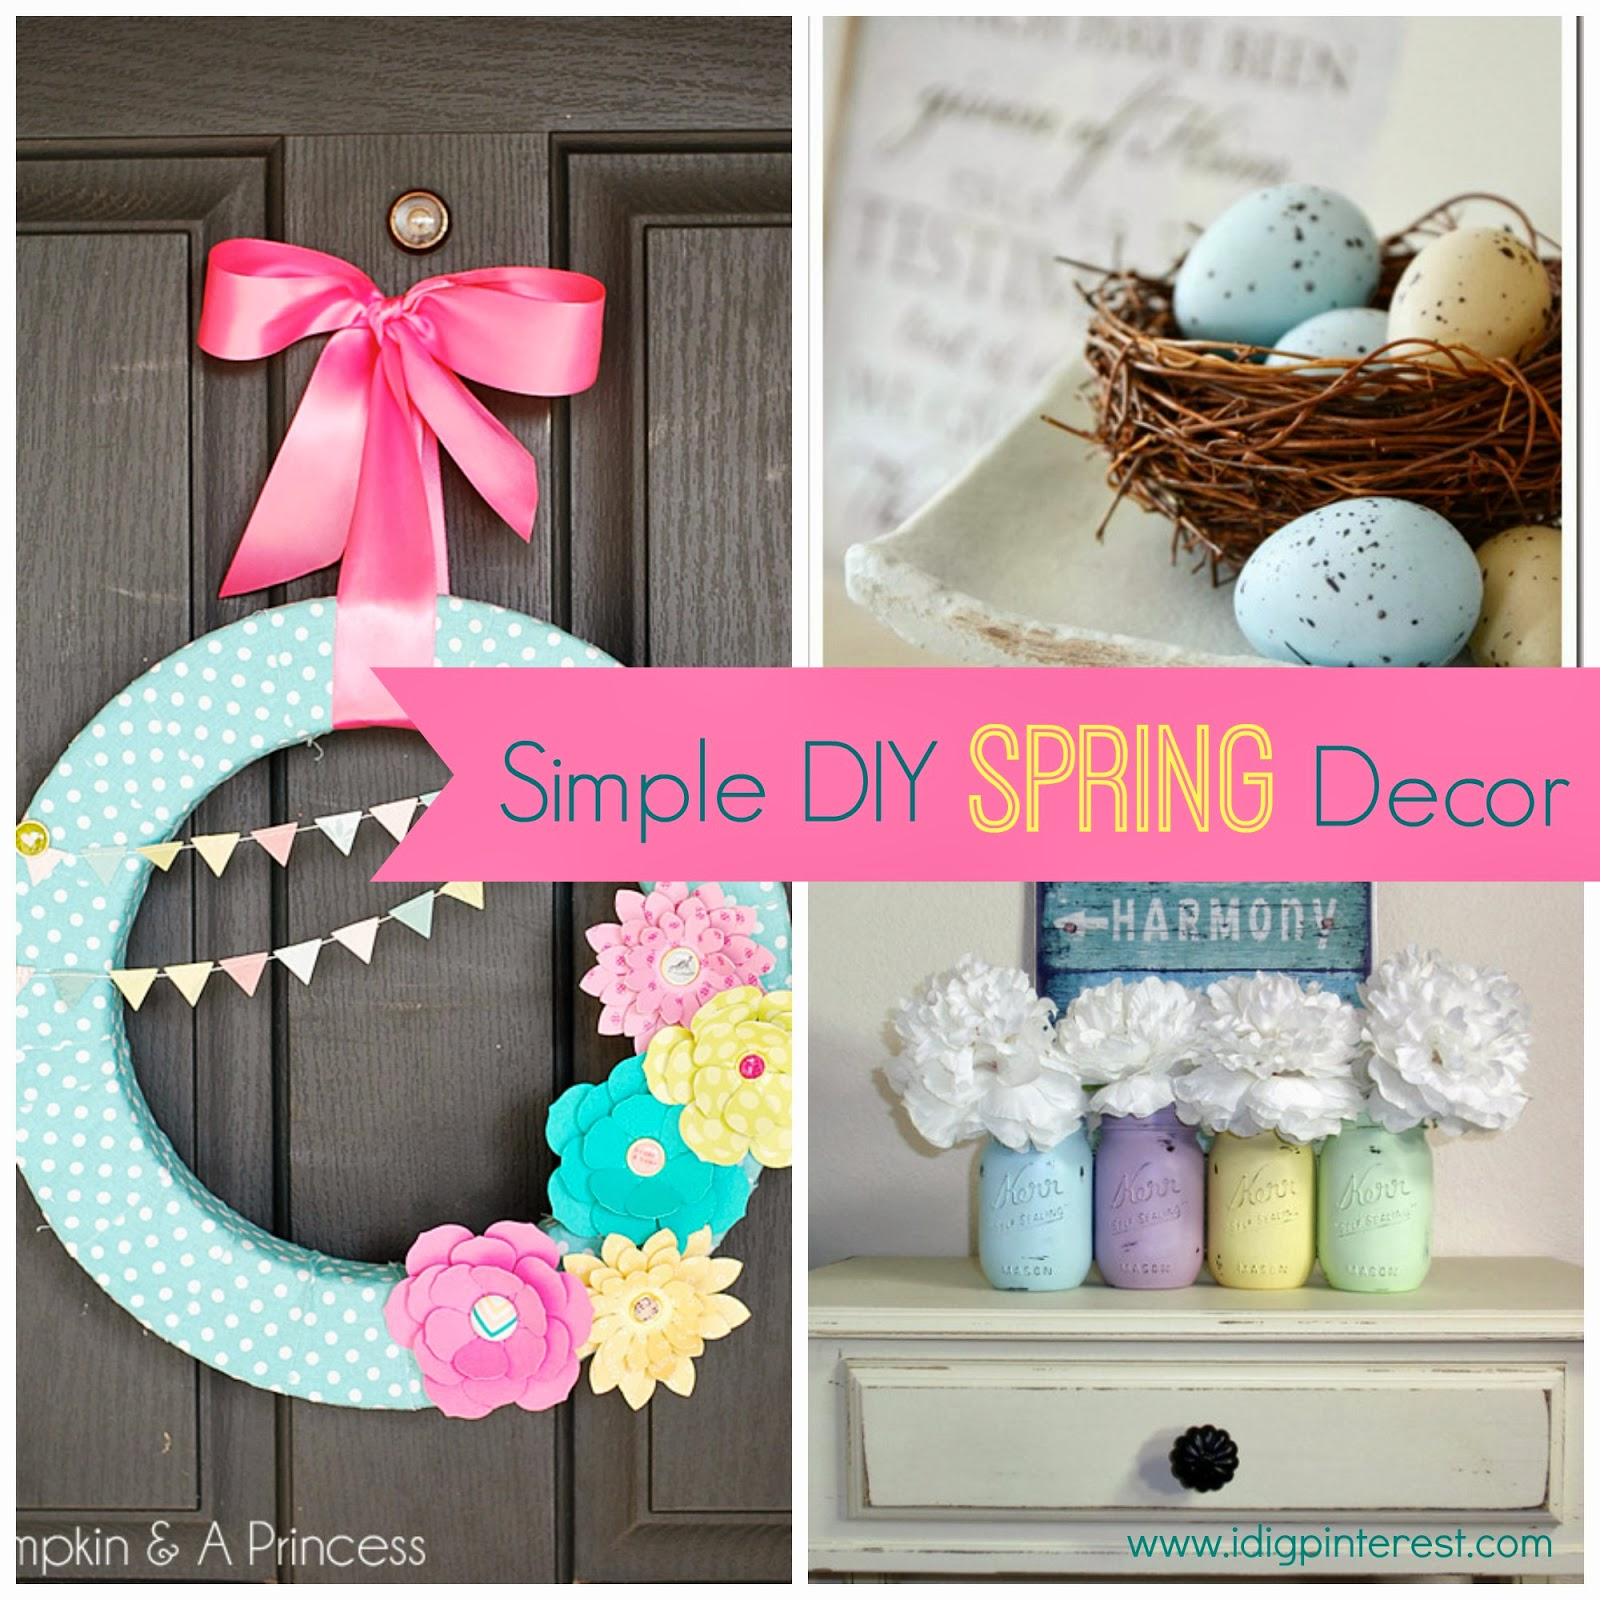 Pinterest Home Decor 2014: Simple DIY Spring Decor Ideas